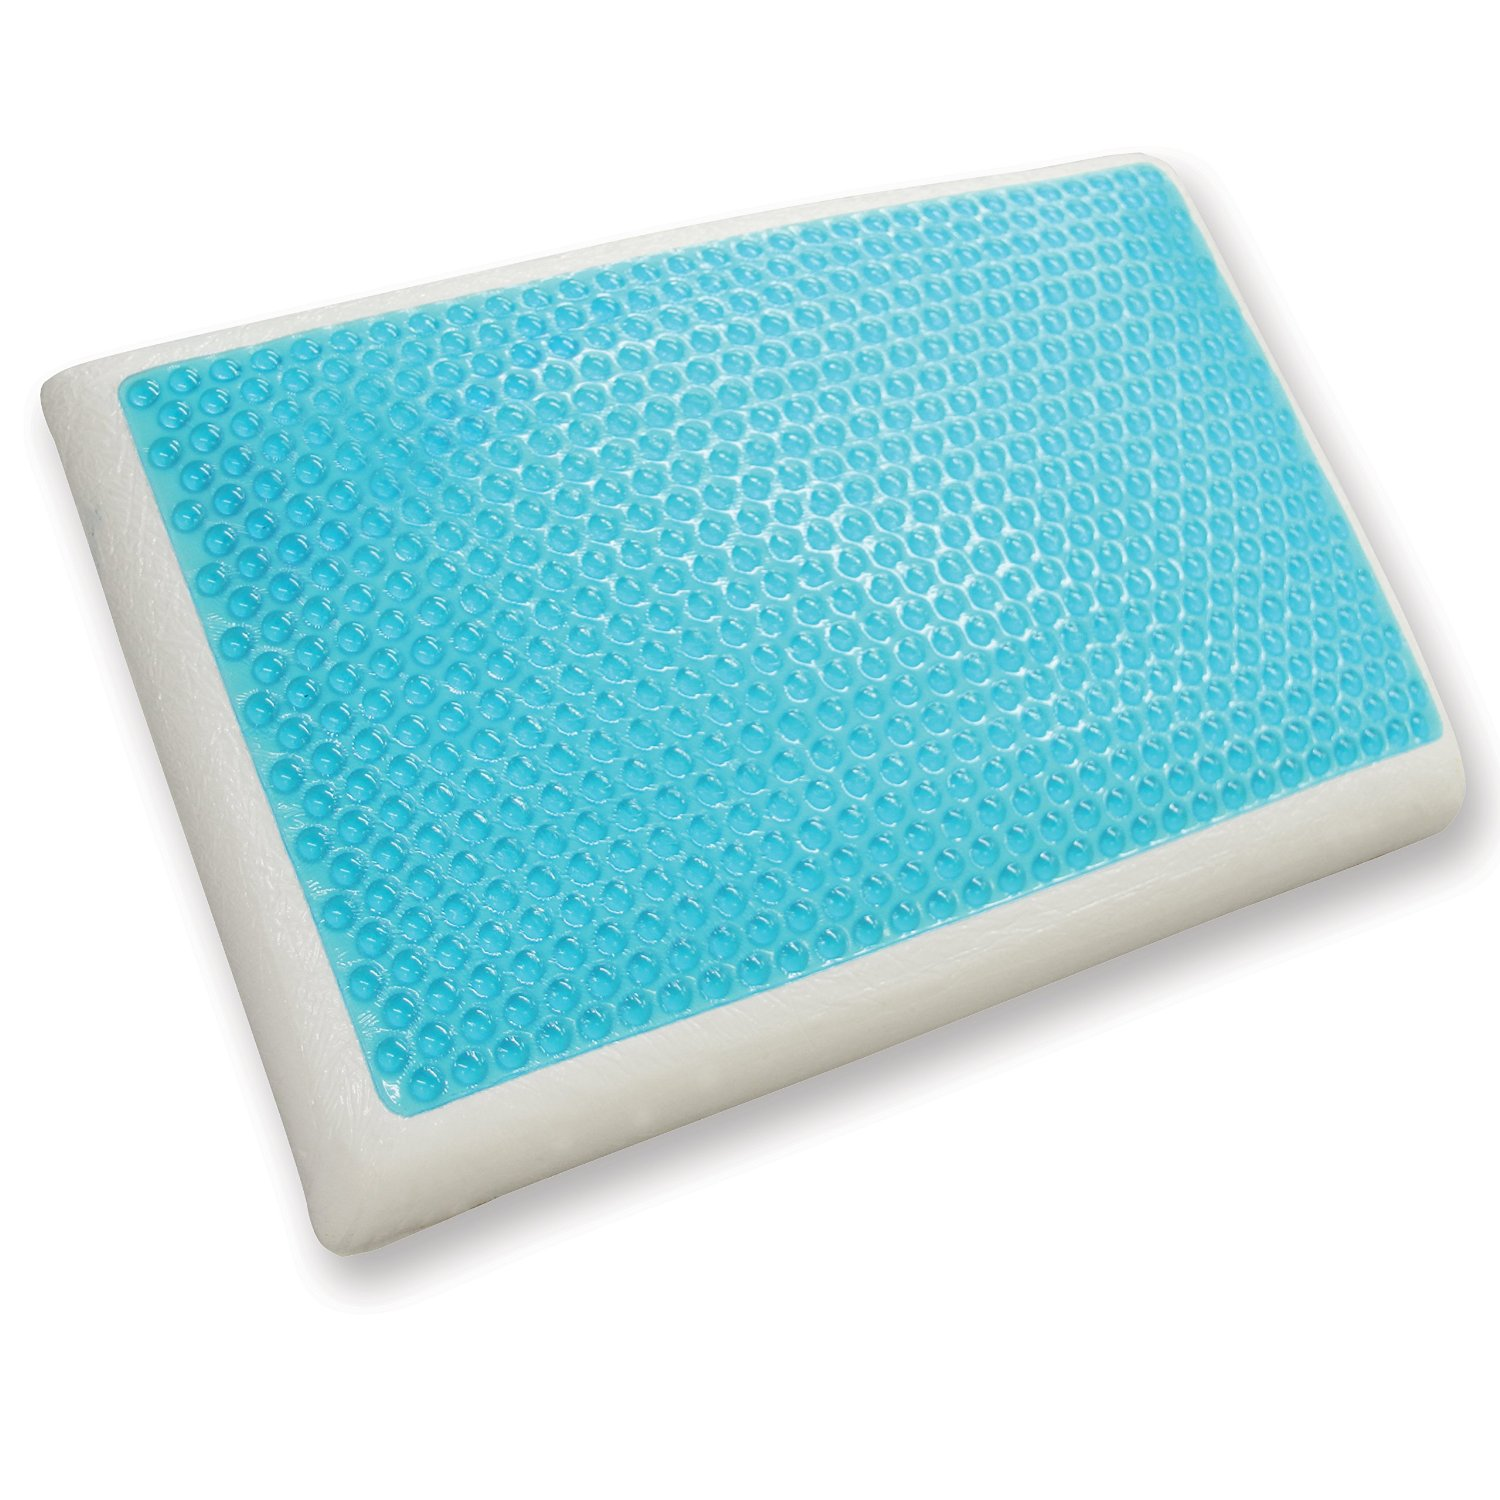 Gel Cushions For Bed picture on Gel Cushions For Bedmemory foam gel pillow with Gel Cushions For Bed, sofa 4ea685678fbab5a72218005bafe255d6